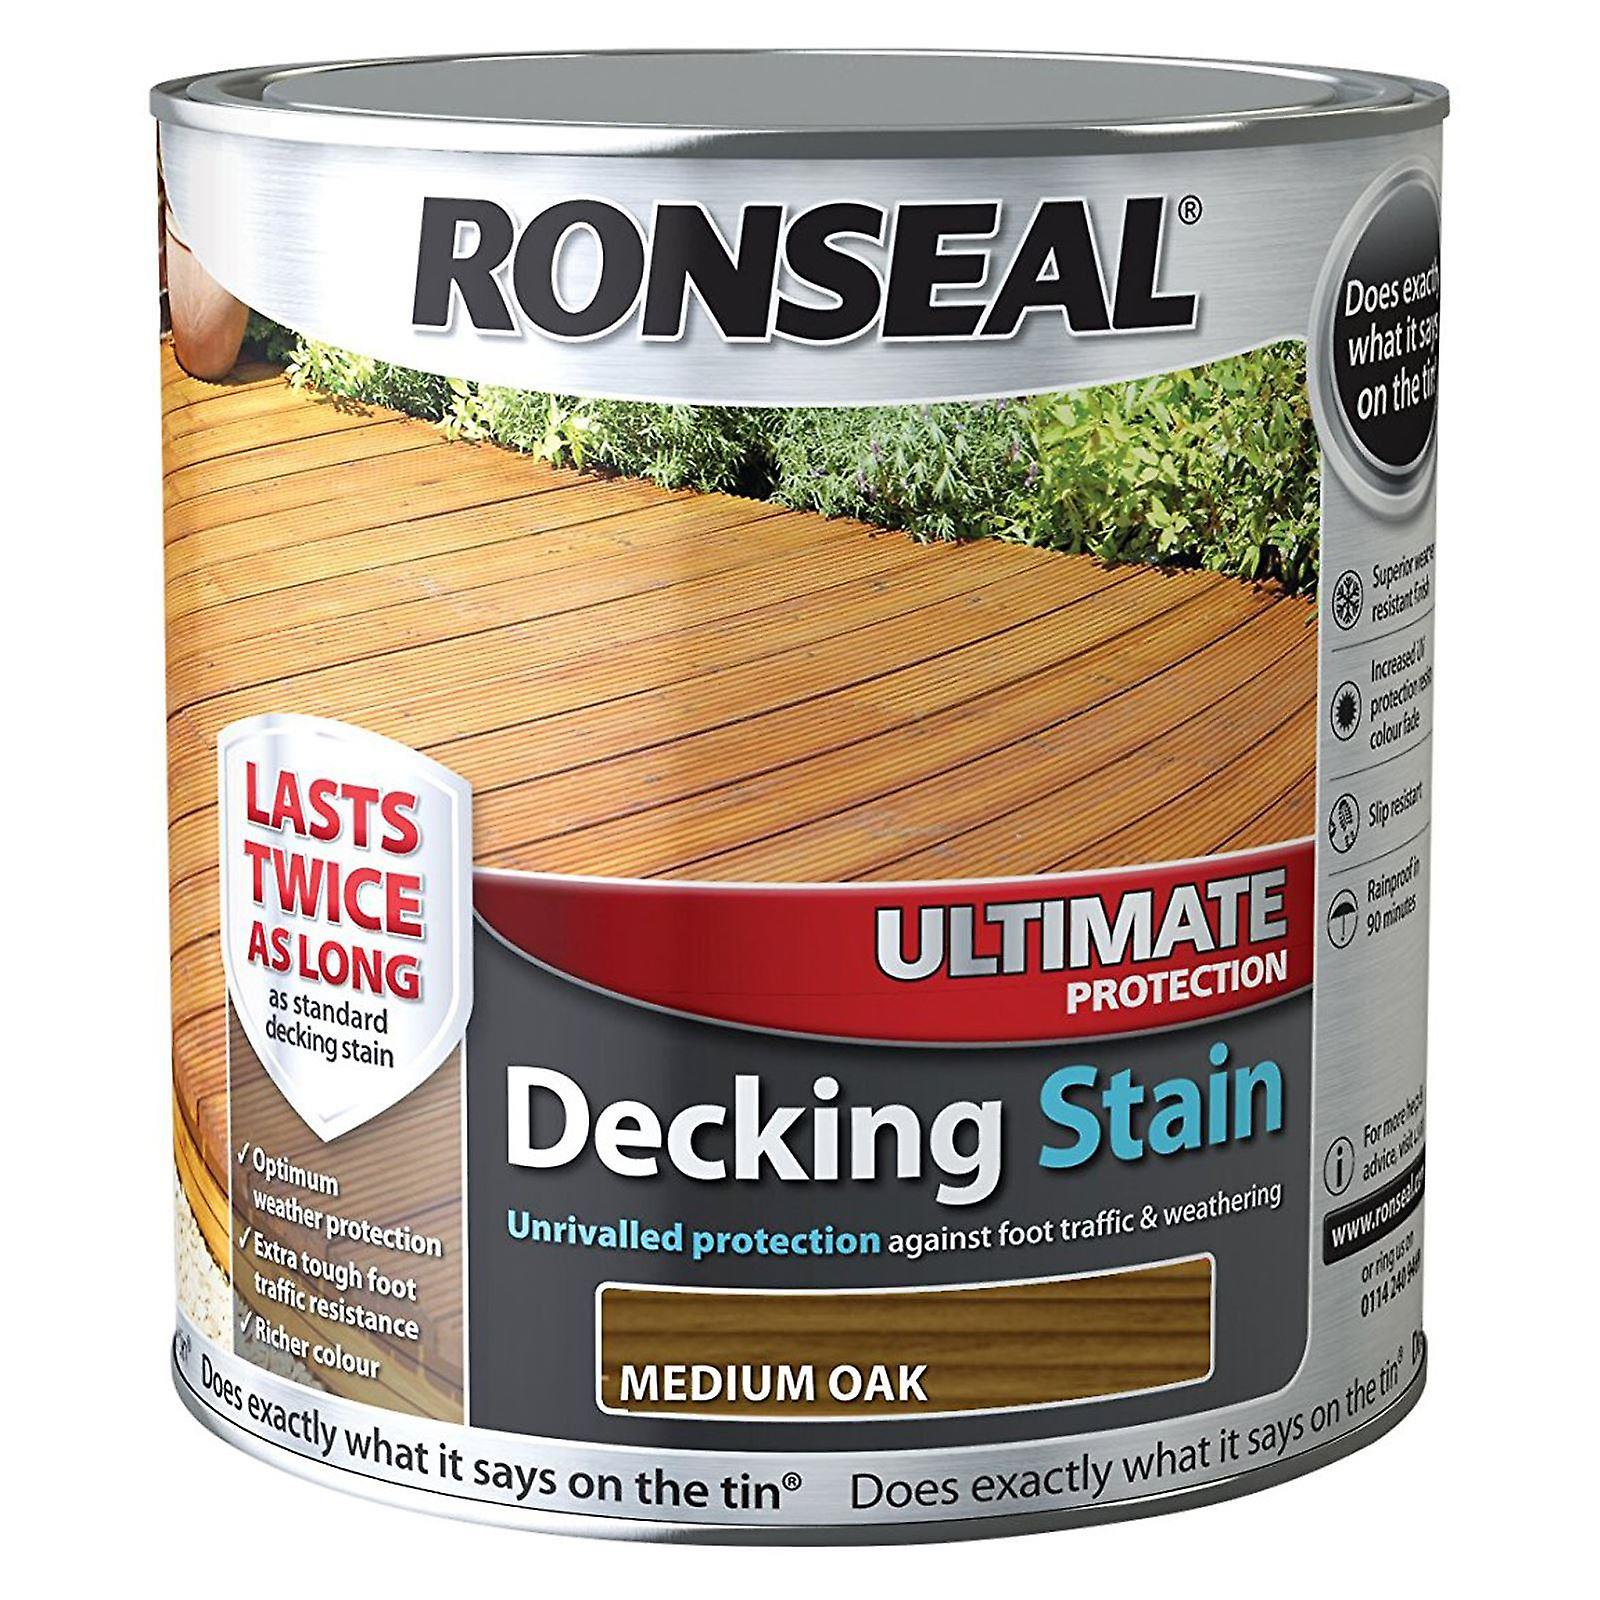 Ronseal 2.5 Litre Ultimate Protection Decking Stain - Medium Oak